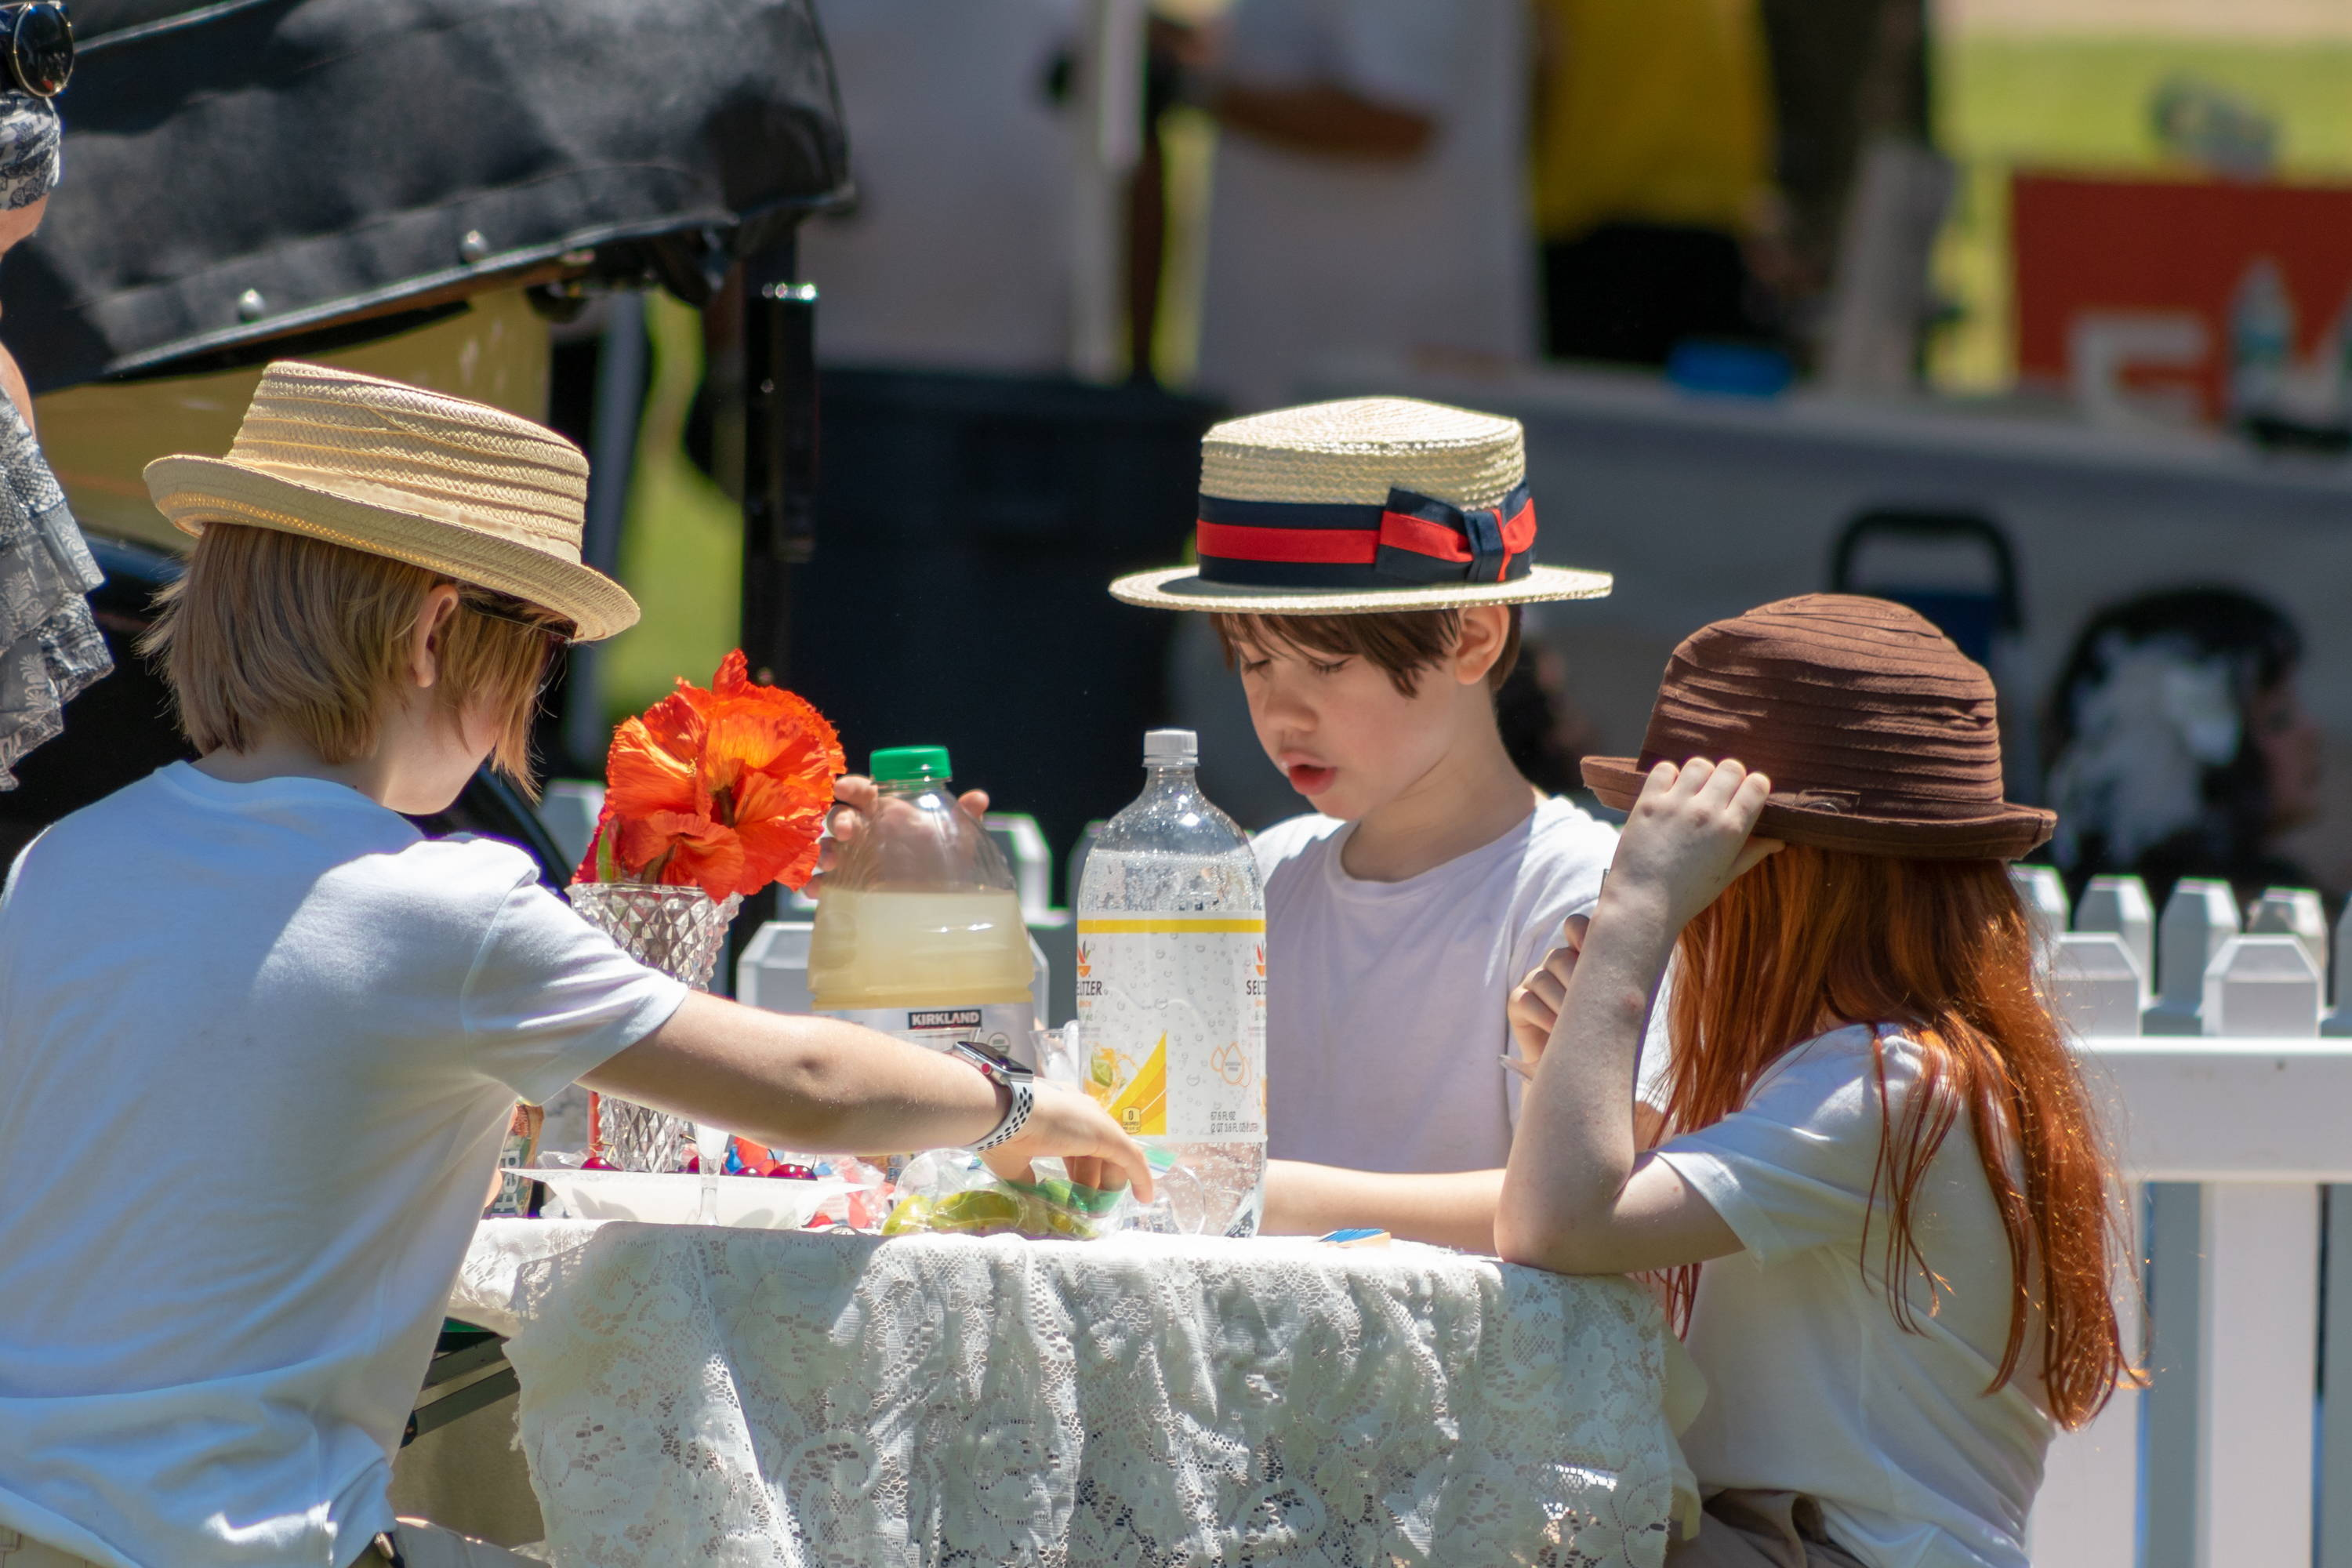 Trend Vintage Hats for Kids at Jazz Age Lawn Party